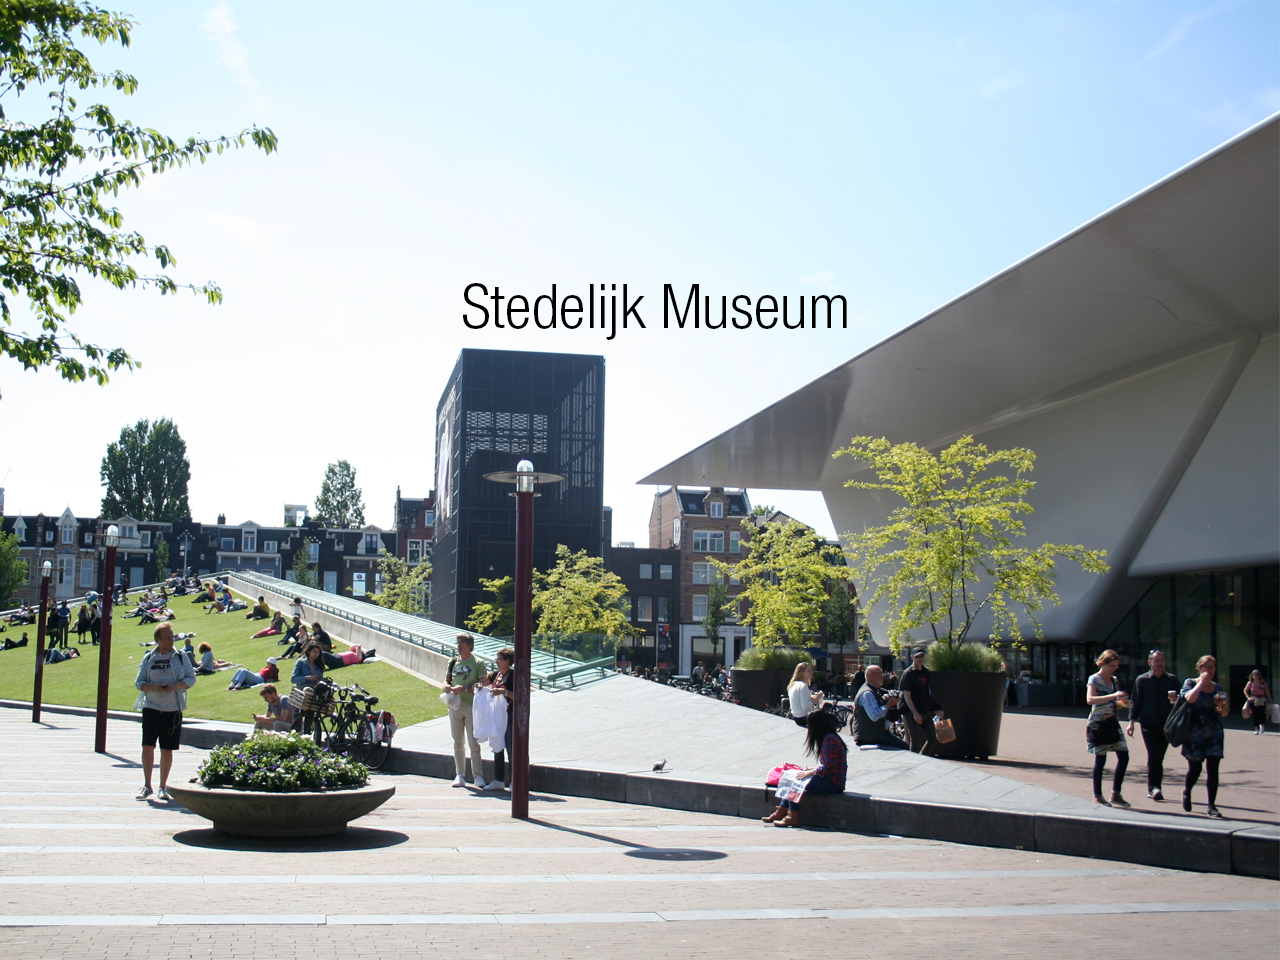 Day 2 led us to the Stedelijk Museum of modern art